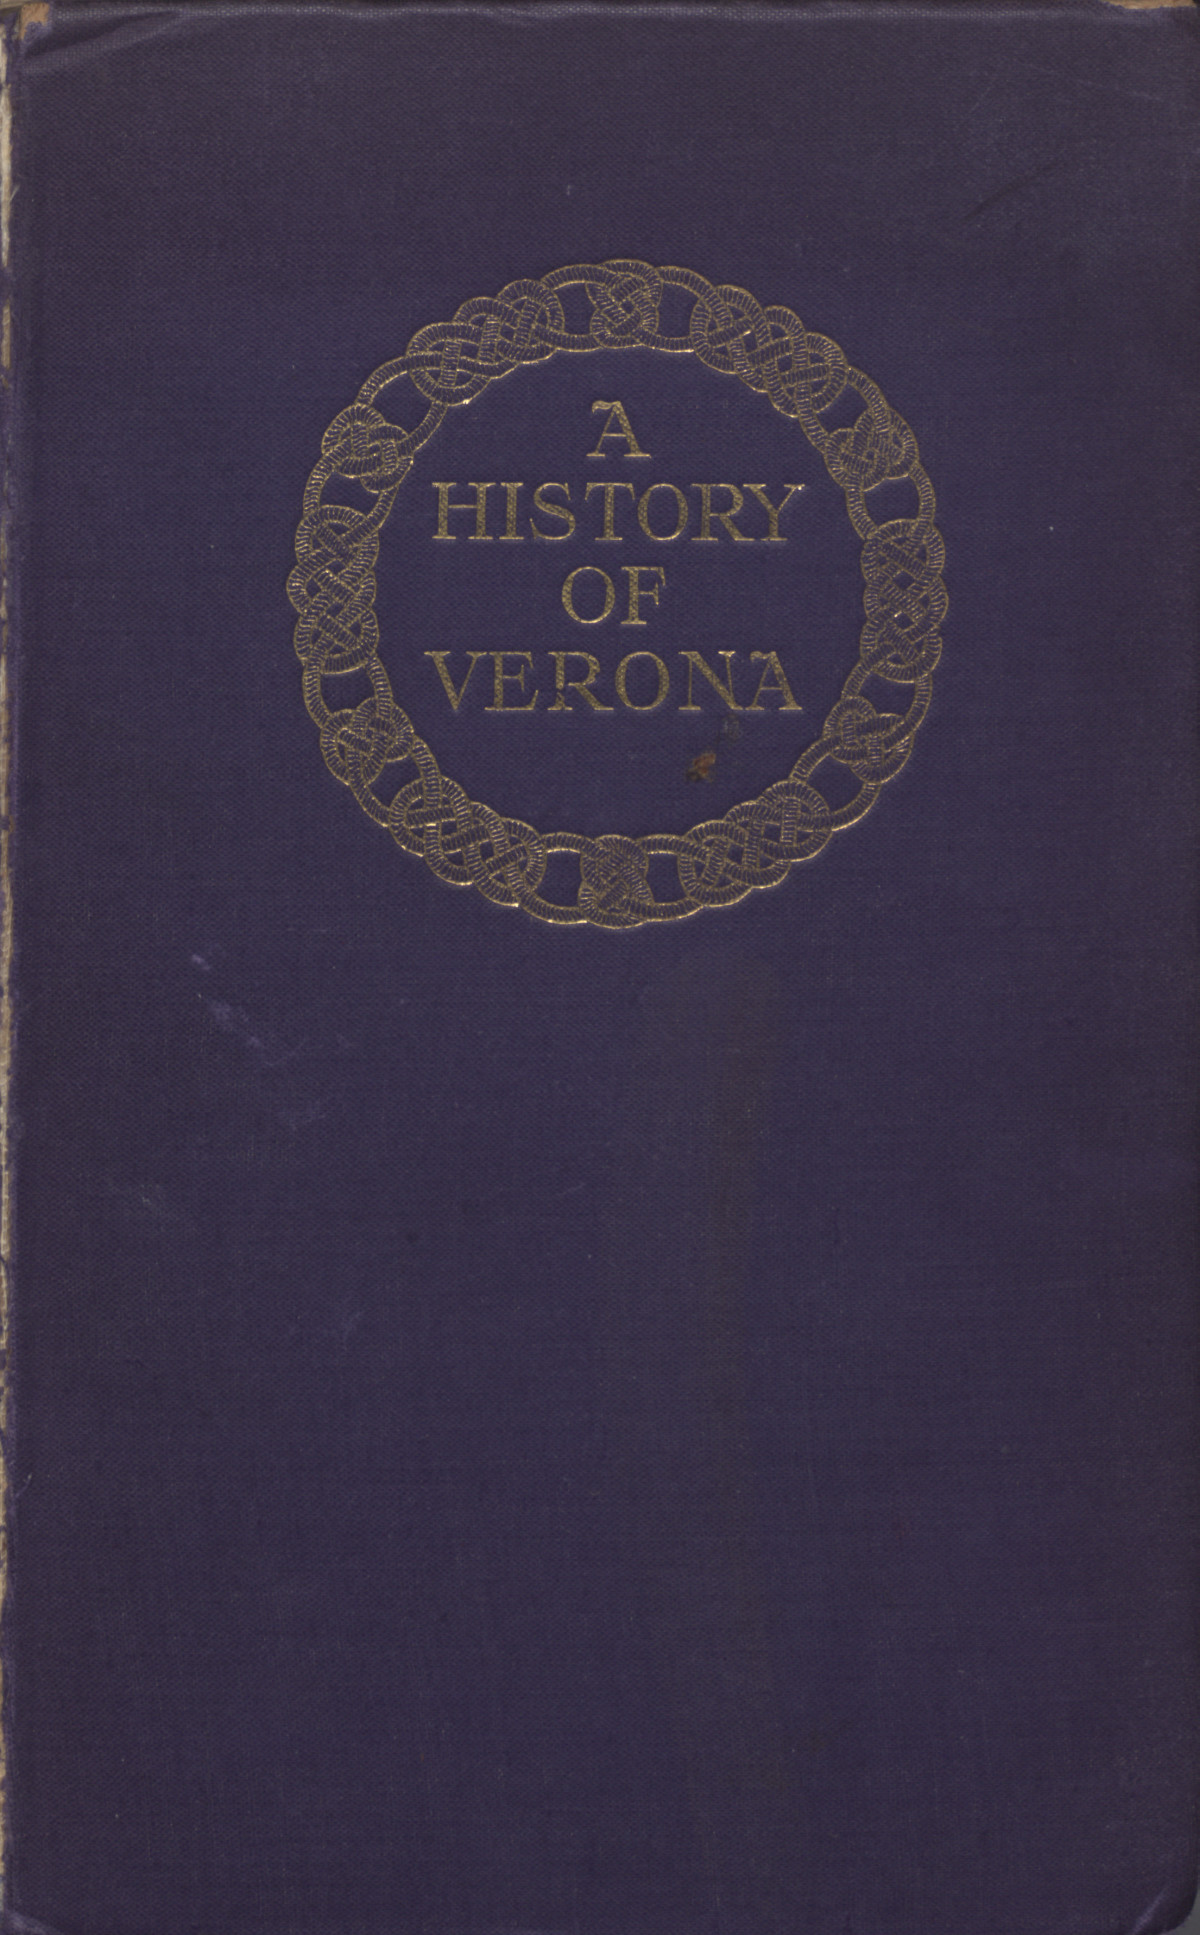 A history of Verona, by A. M. Allen.  Edited by Edward Armstrong, with twenty illustrations and three maps.                                                                                                      [Sequence #]: 1 of 493